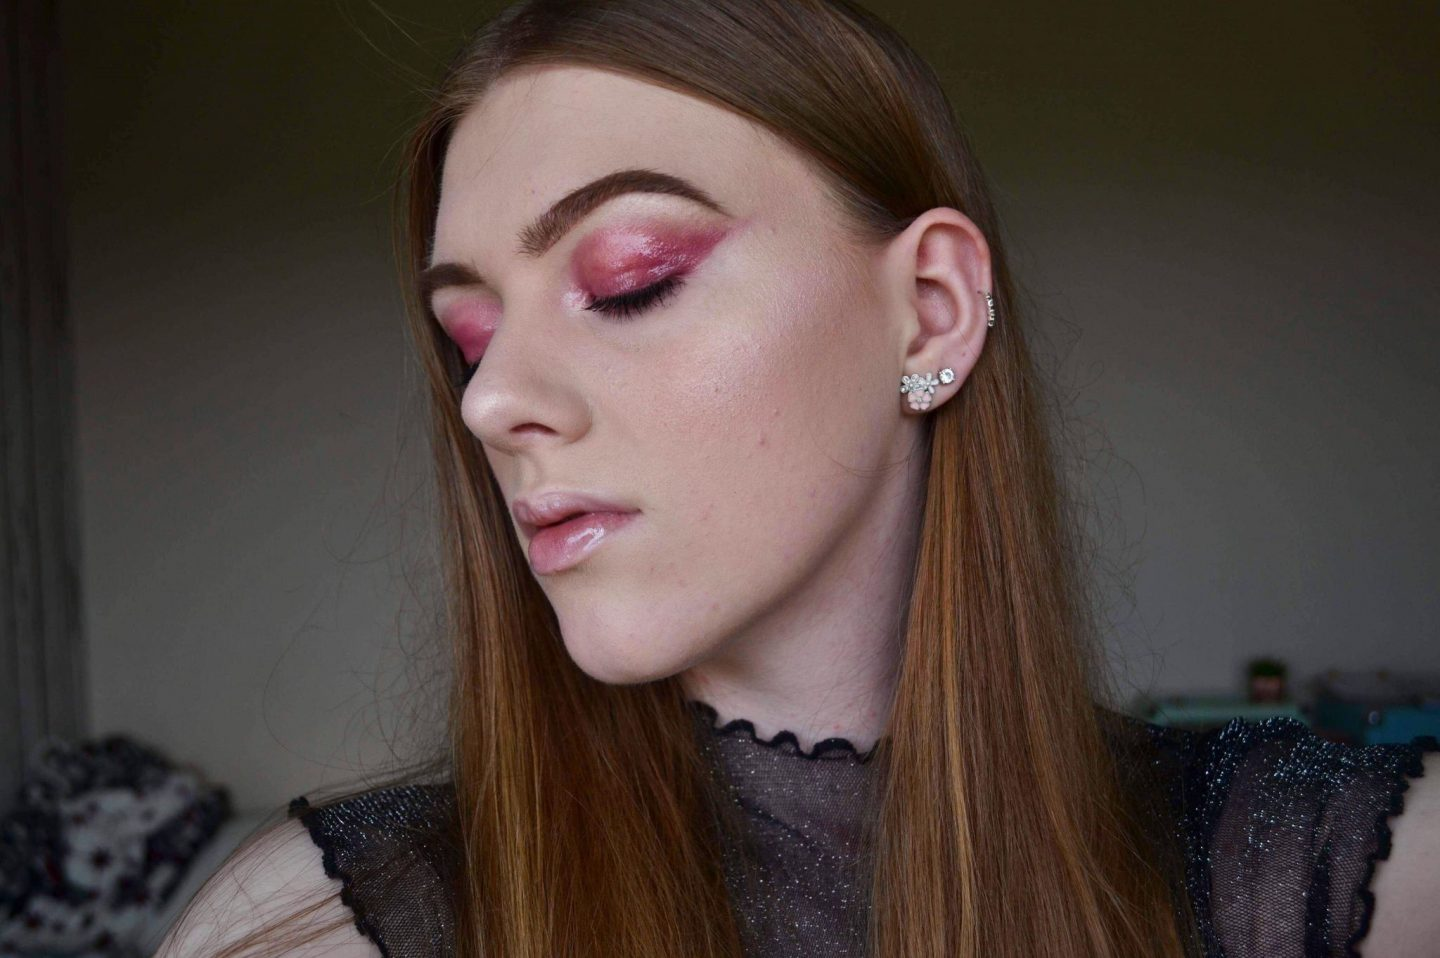 MOTD: Pink and Glossy